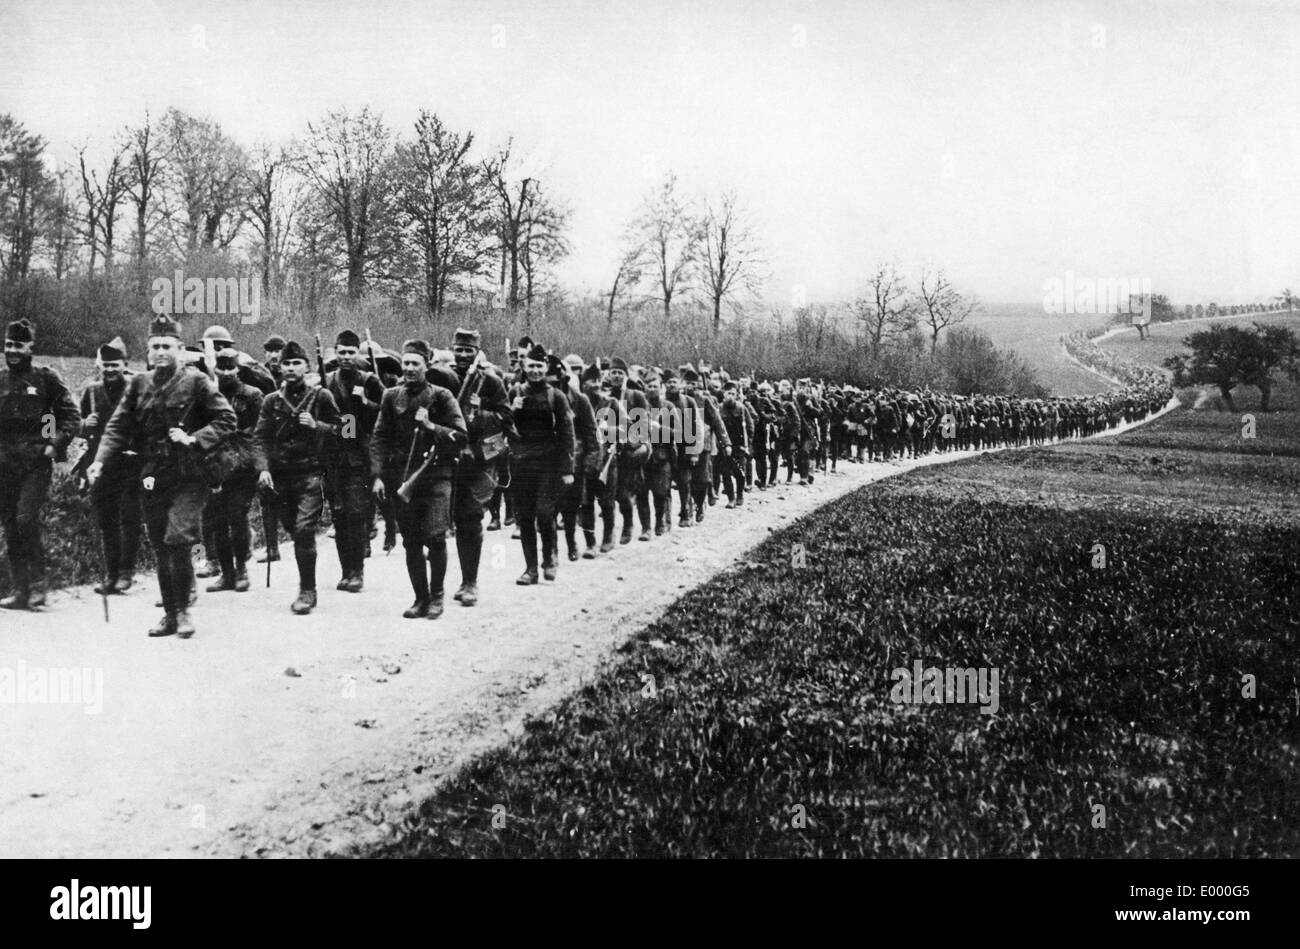 American troops on the way to the front, 1917 Stock Photo